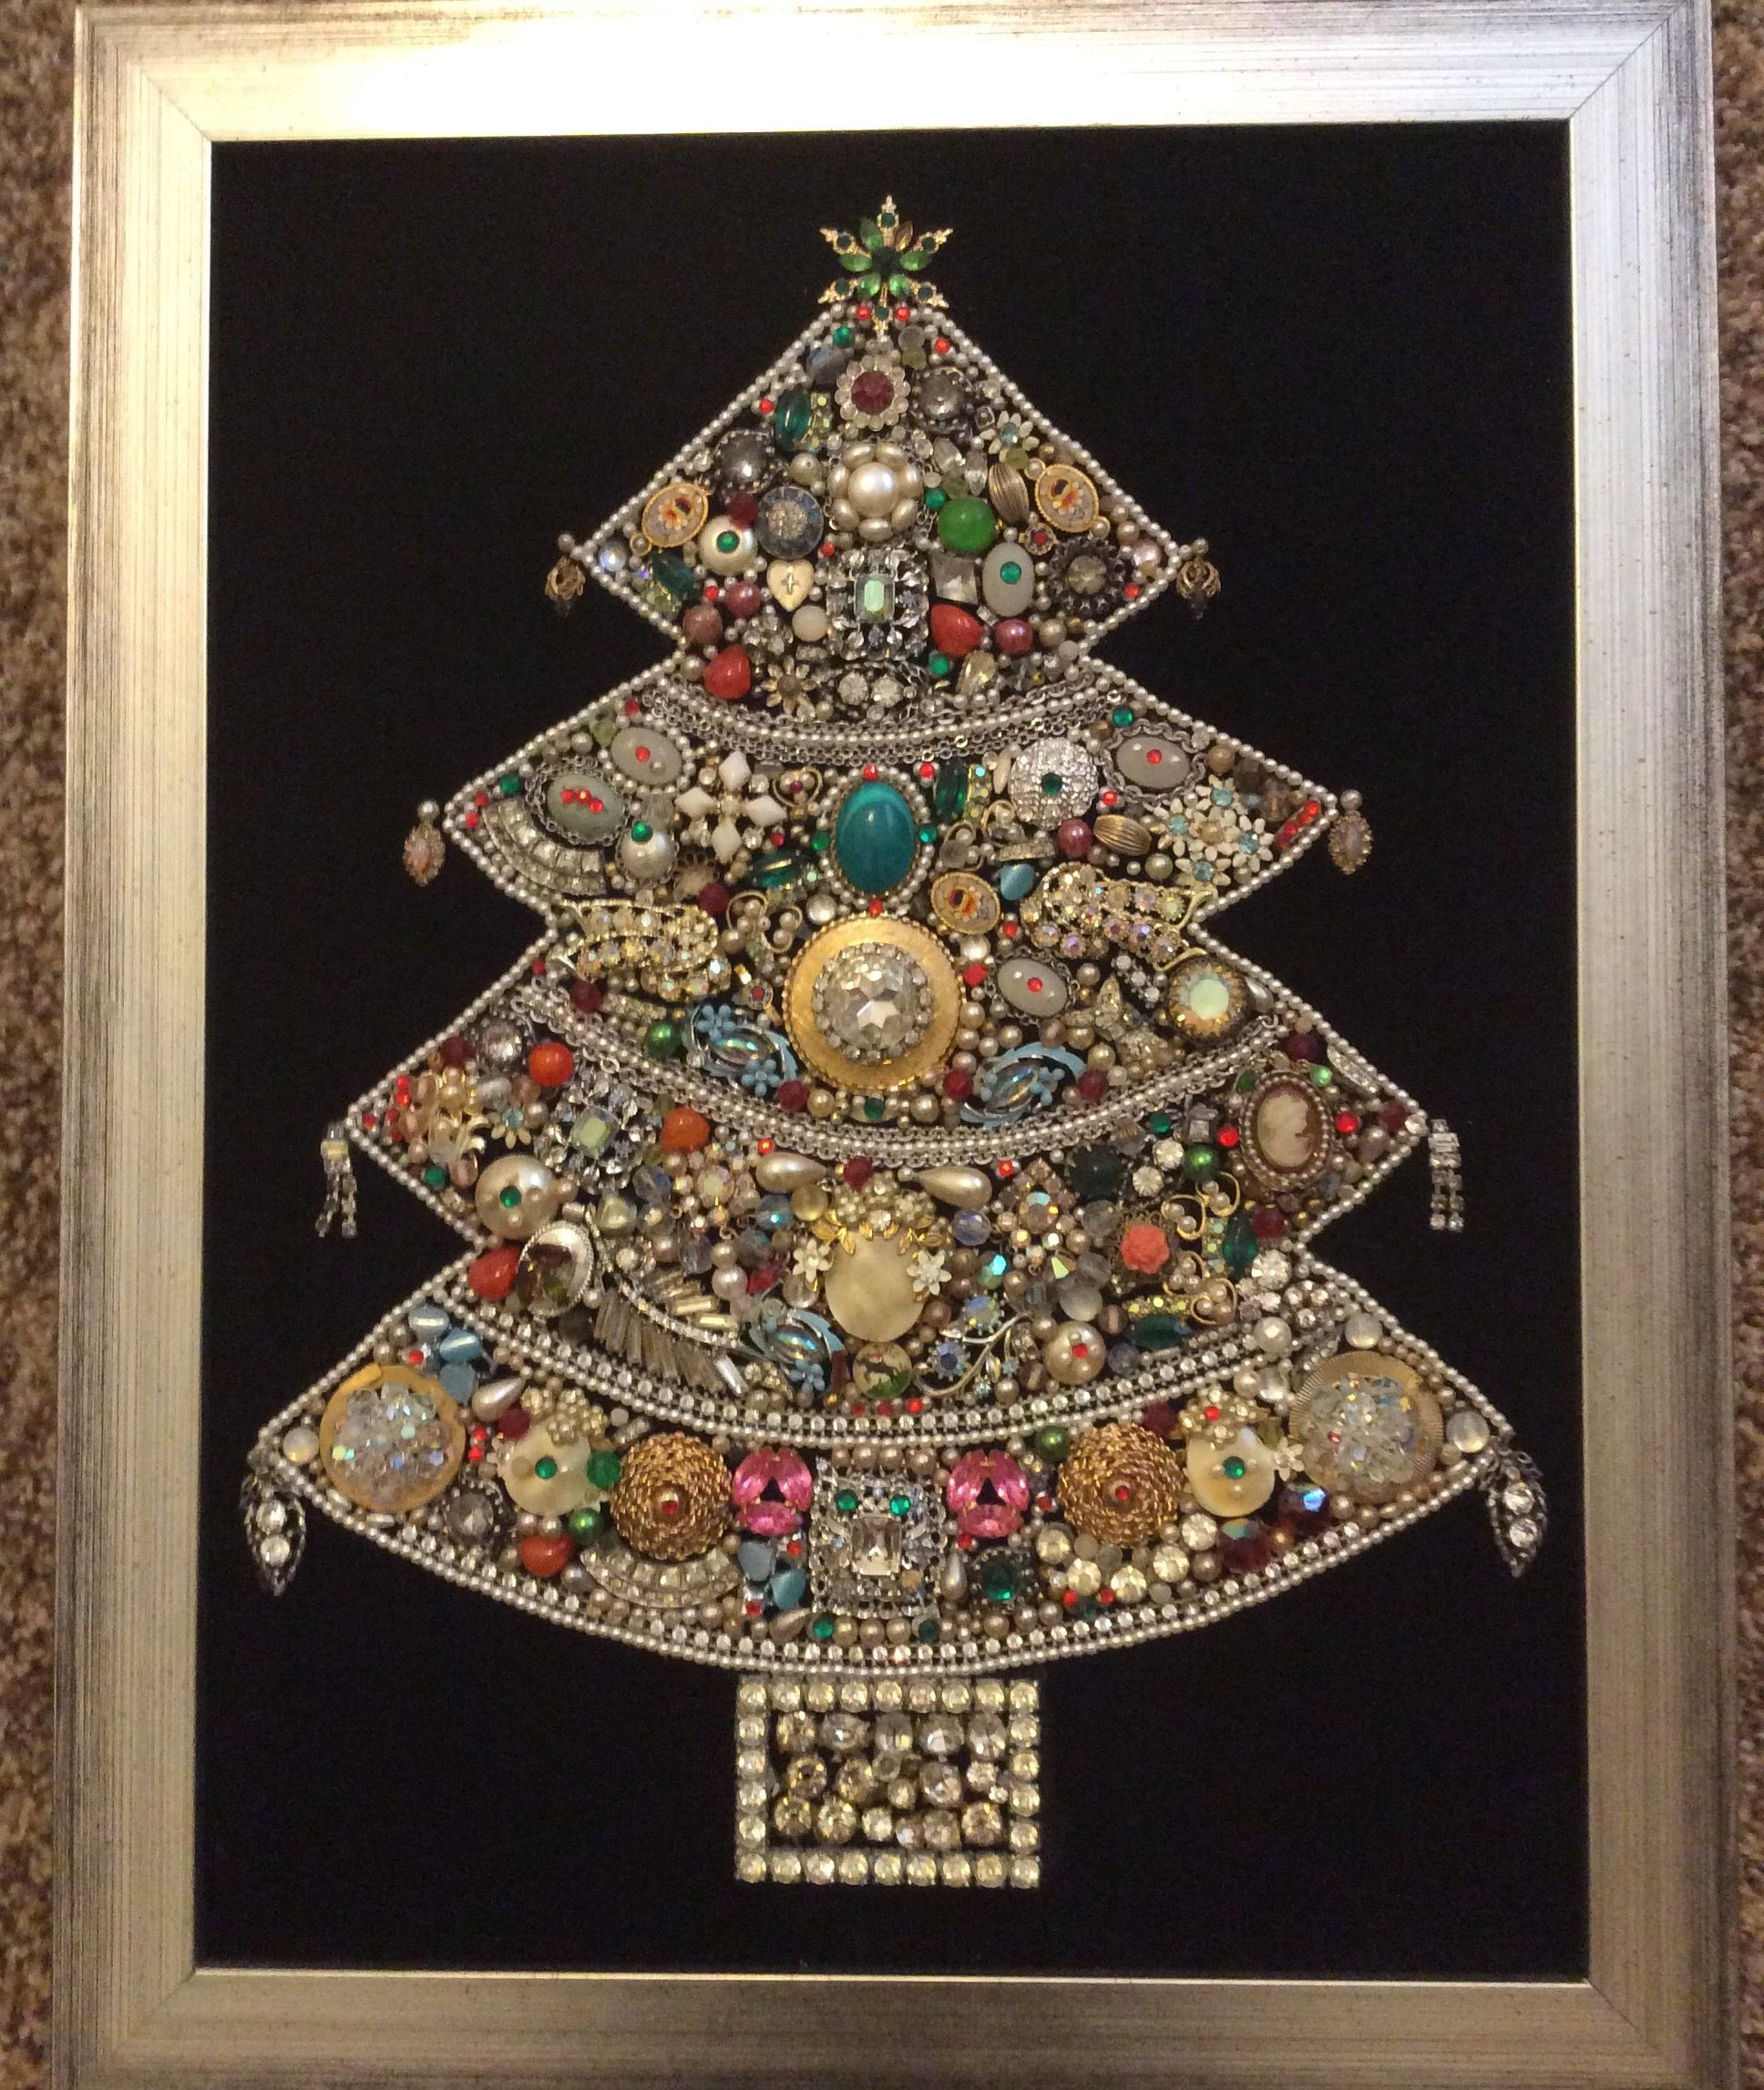 Jeweled Christmas tree picture found in an antique store in Monrovia